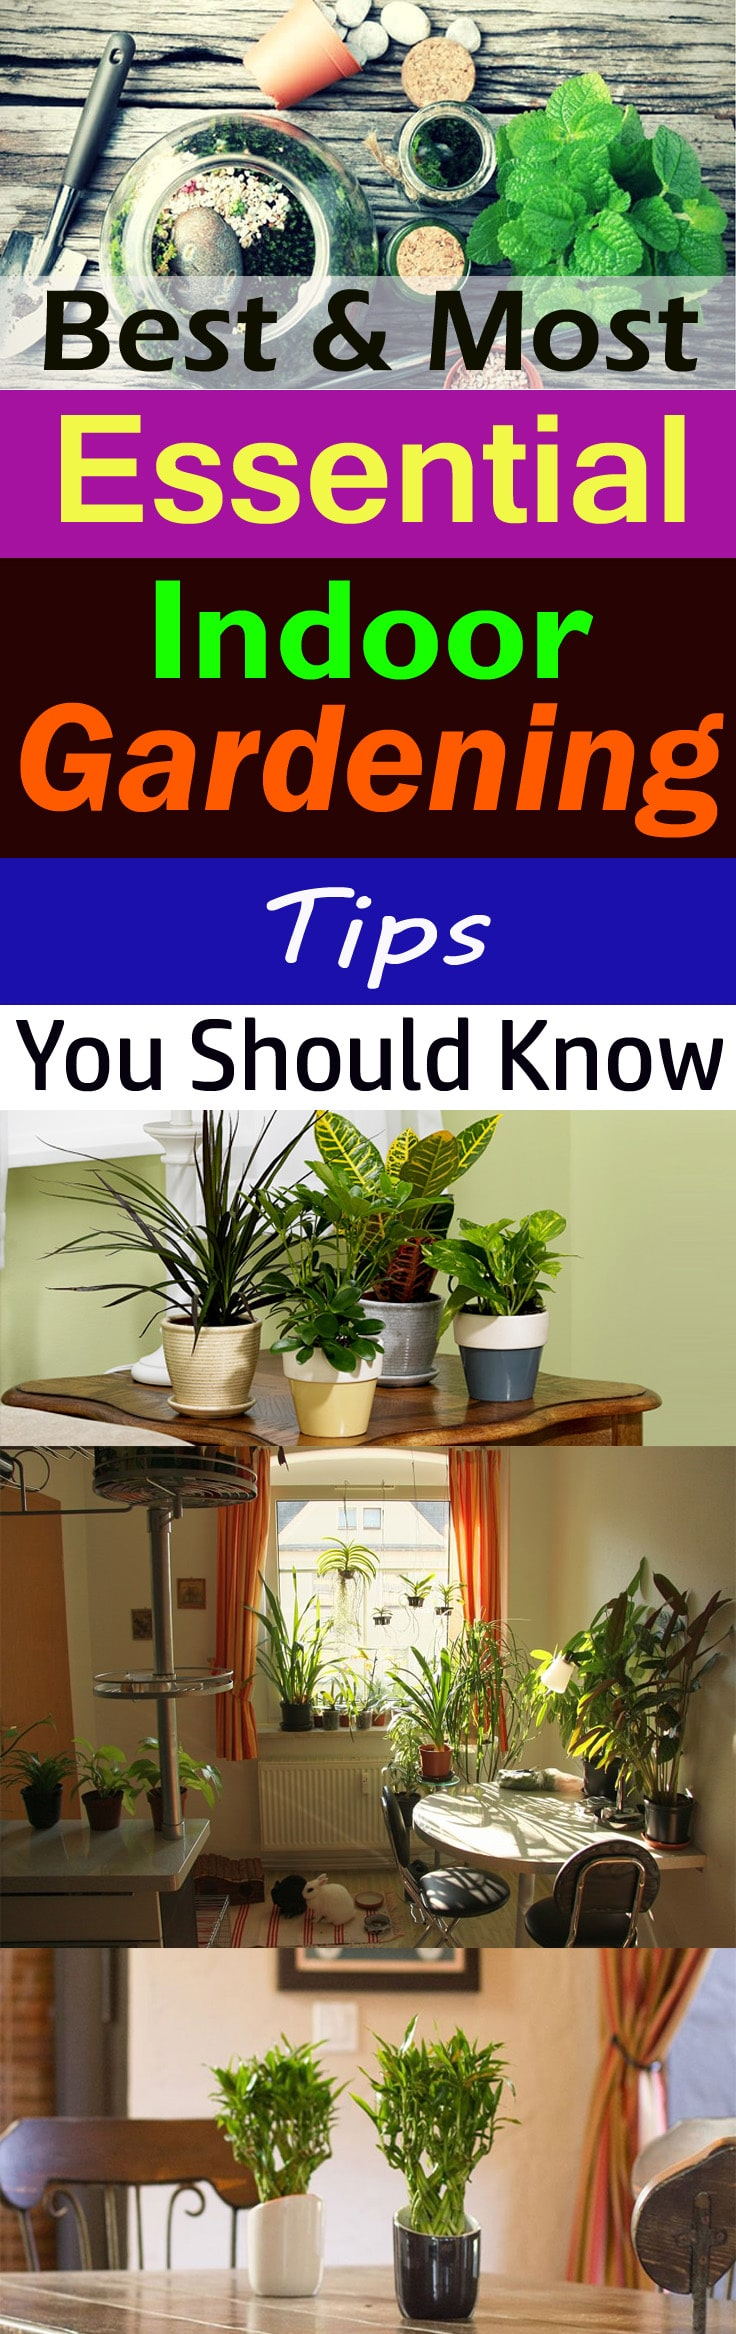 Whether you want to make an indoor garden or you already have one-- Check out some of the best & most essential indoor gardening tips for help!